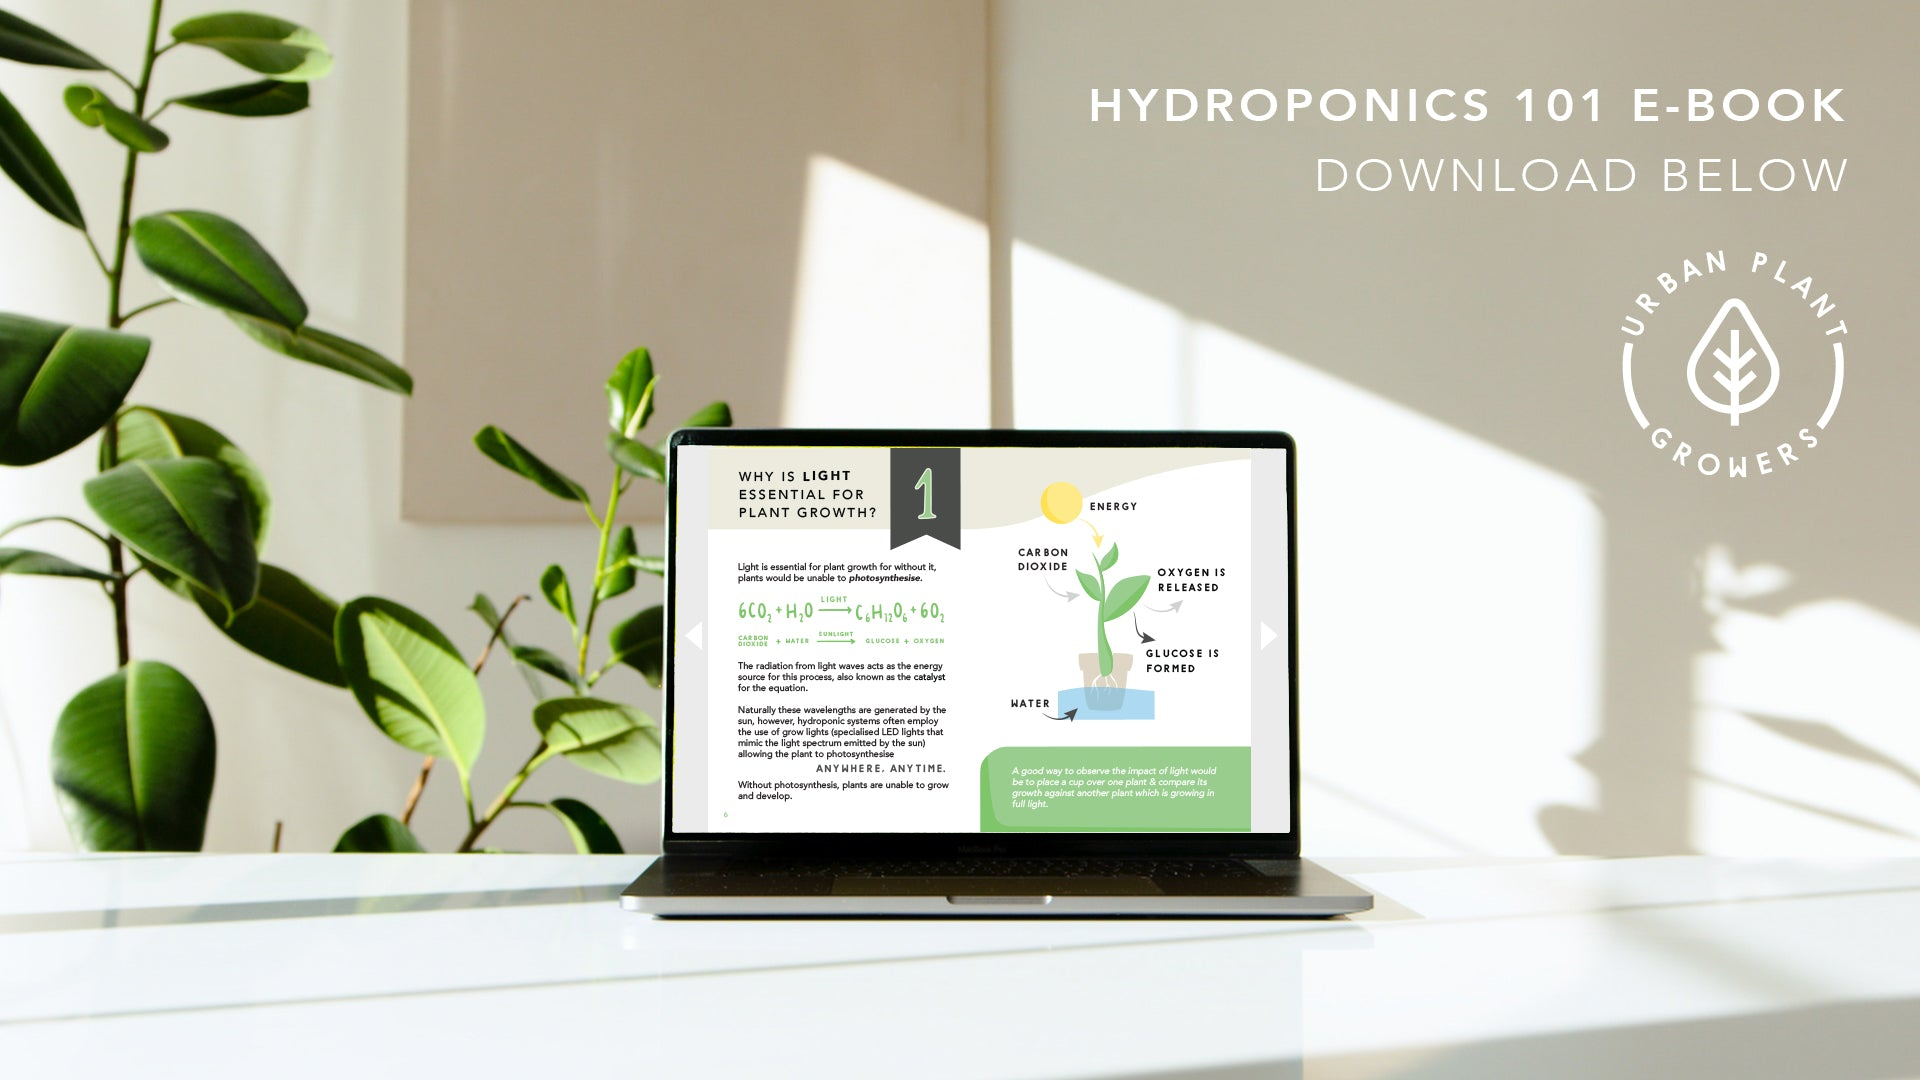 laptop viewing the hydroponics 101 e-book